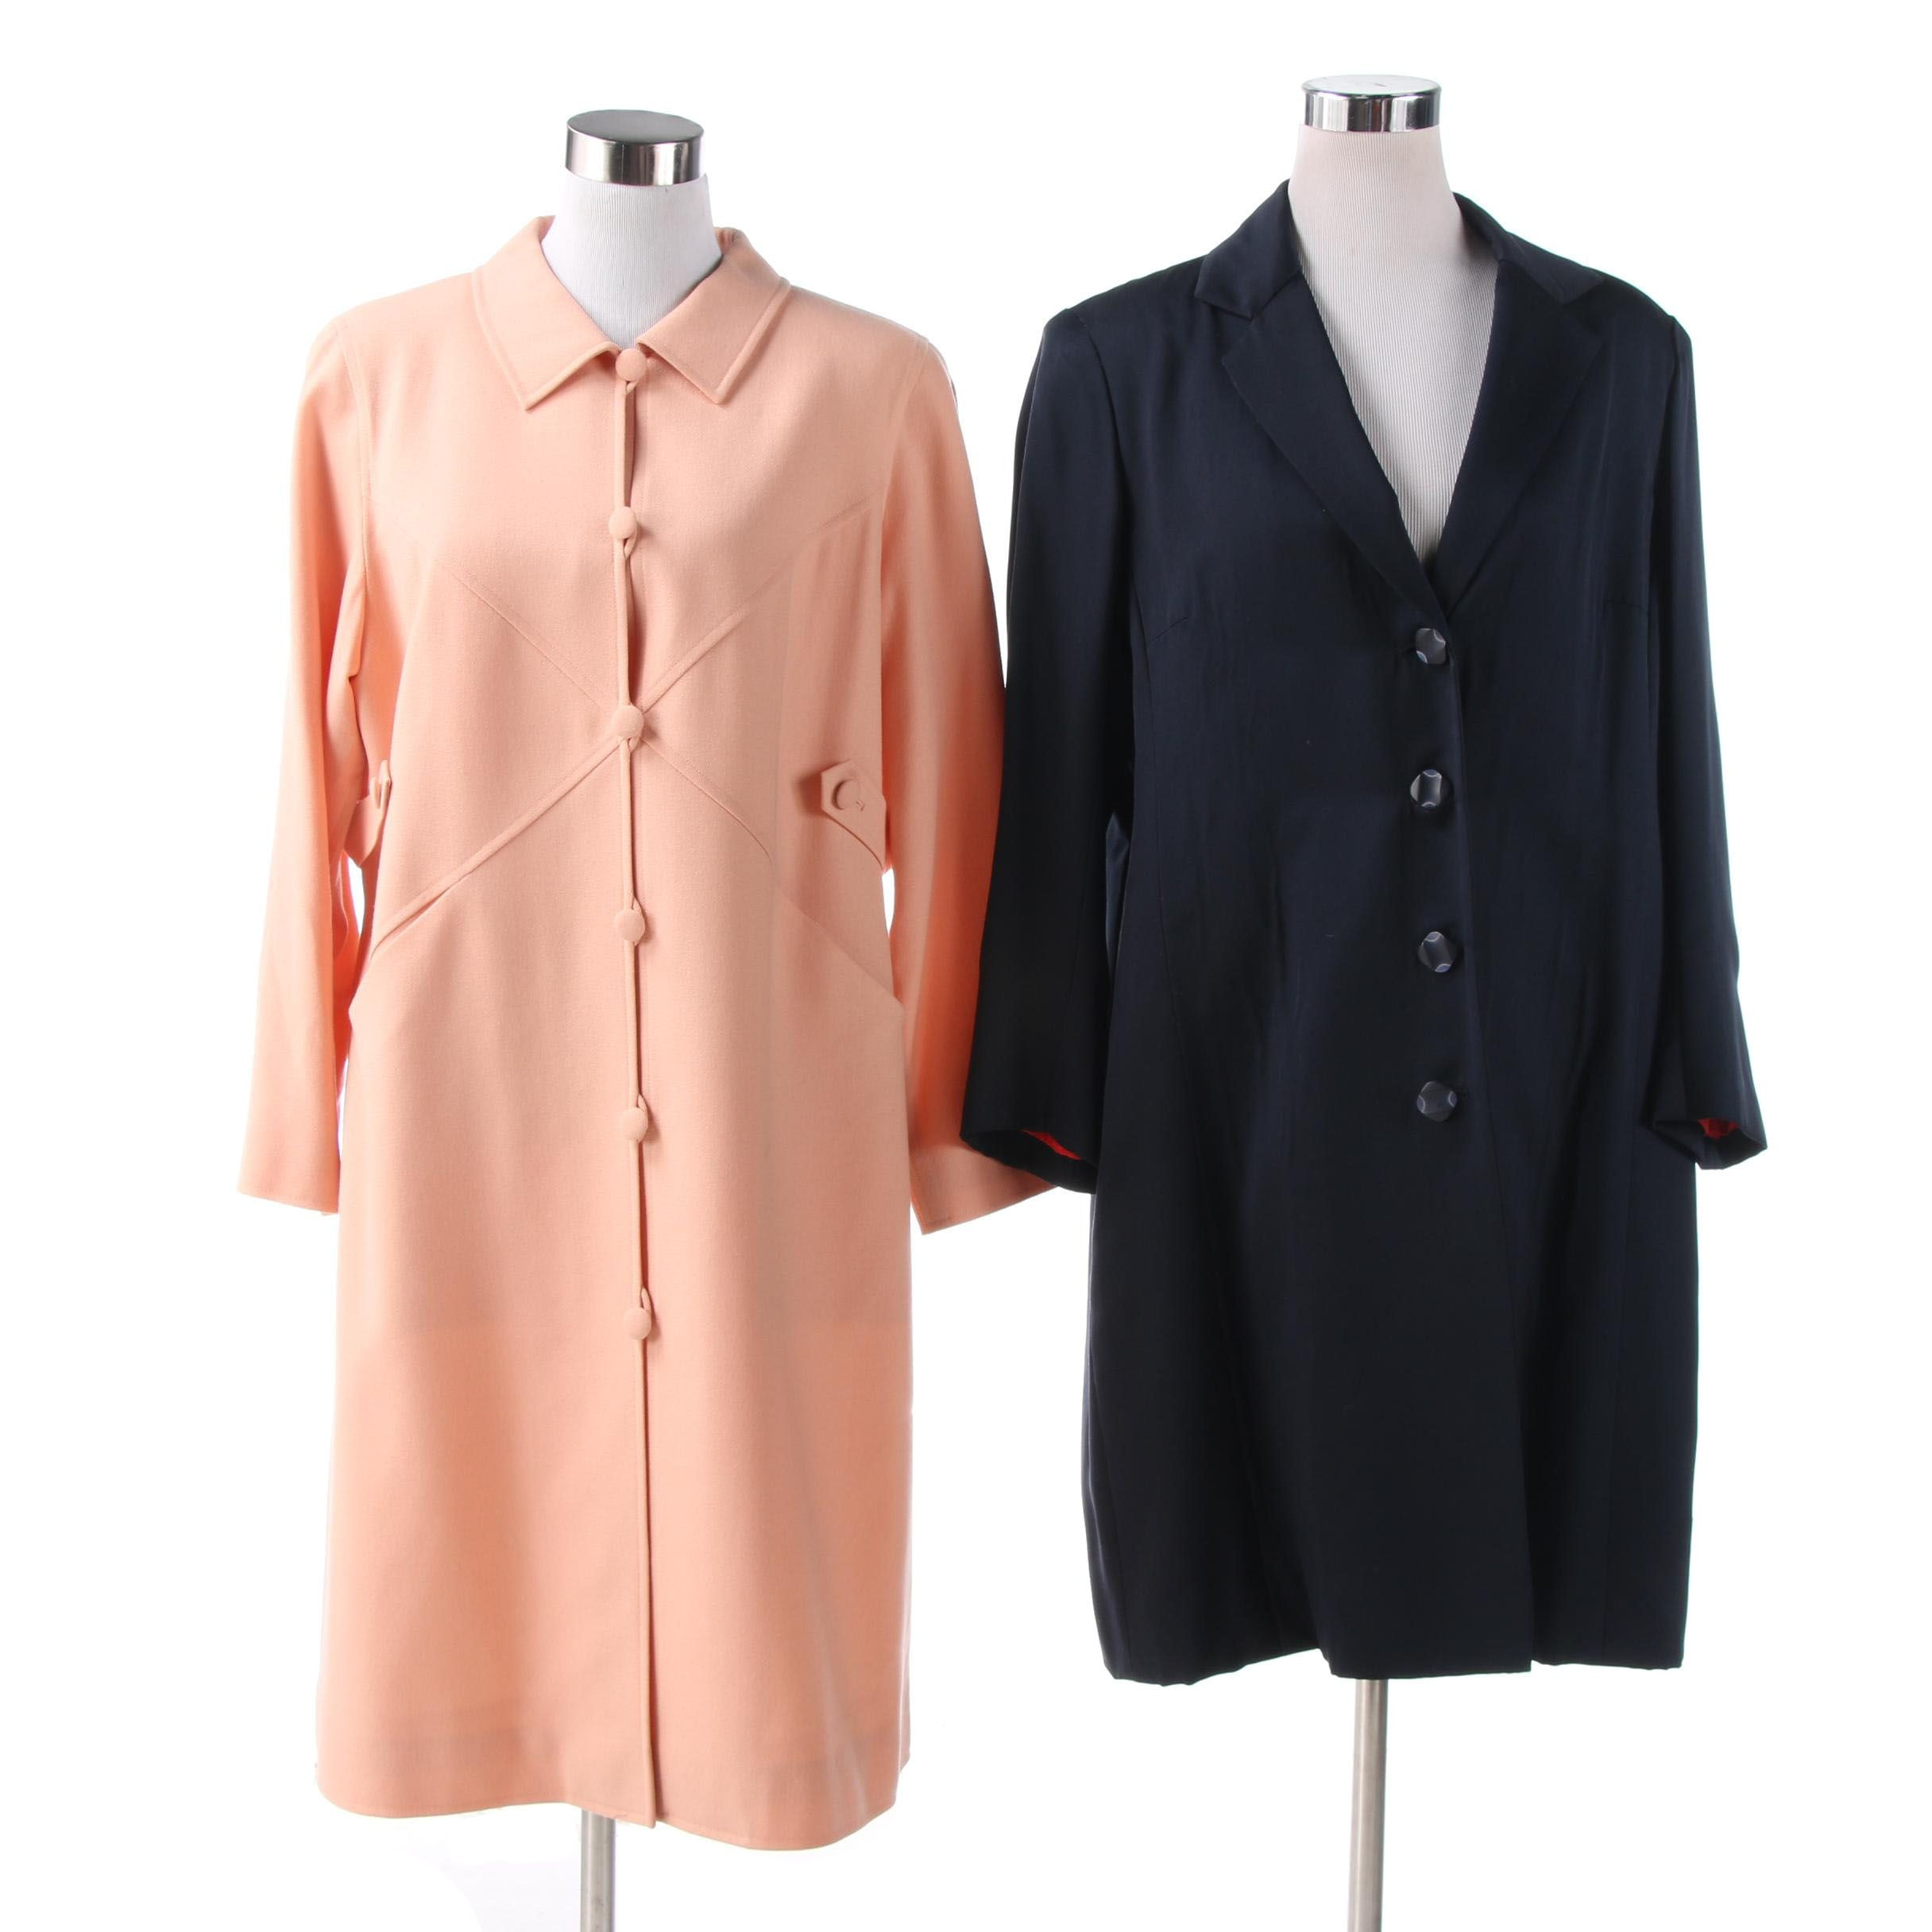 Women's Coats Featuring William Yu and Silk, Vintage